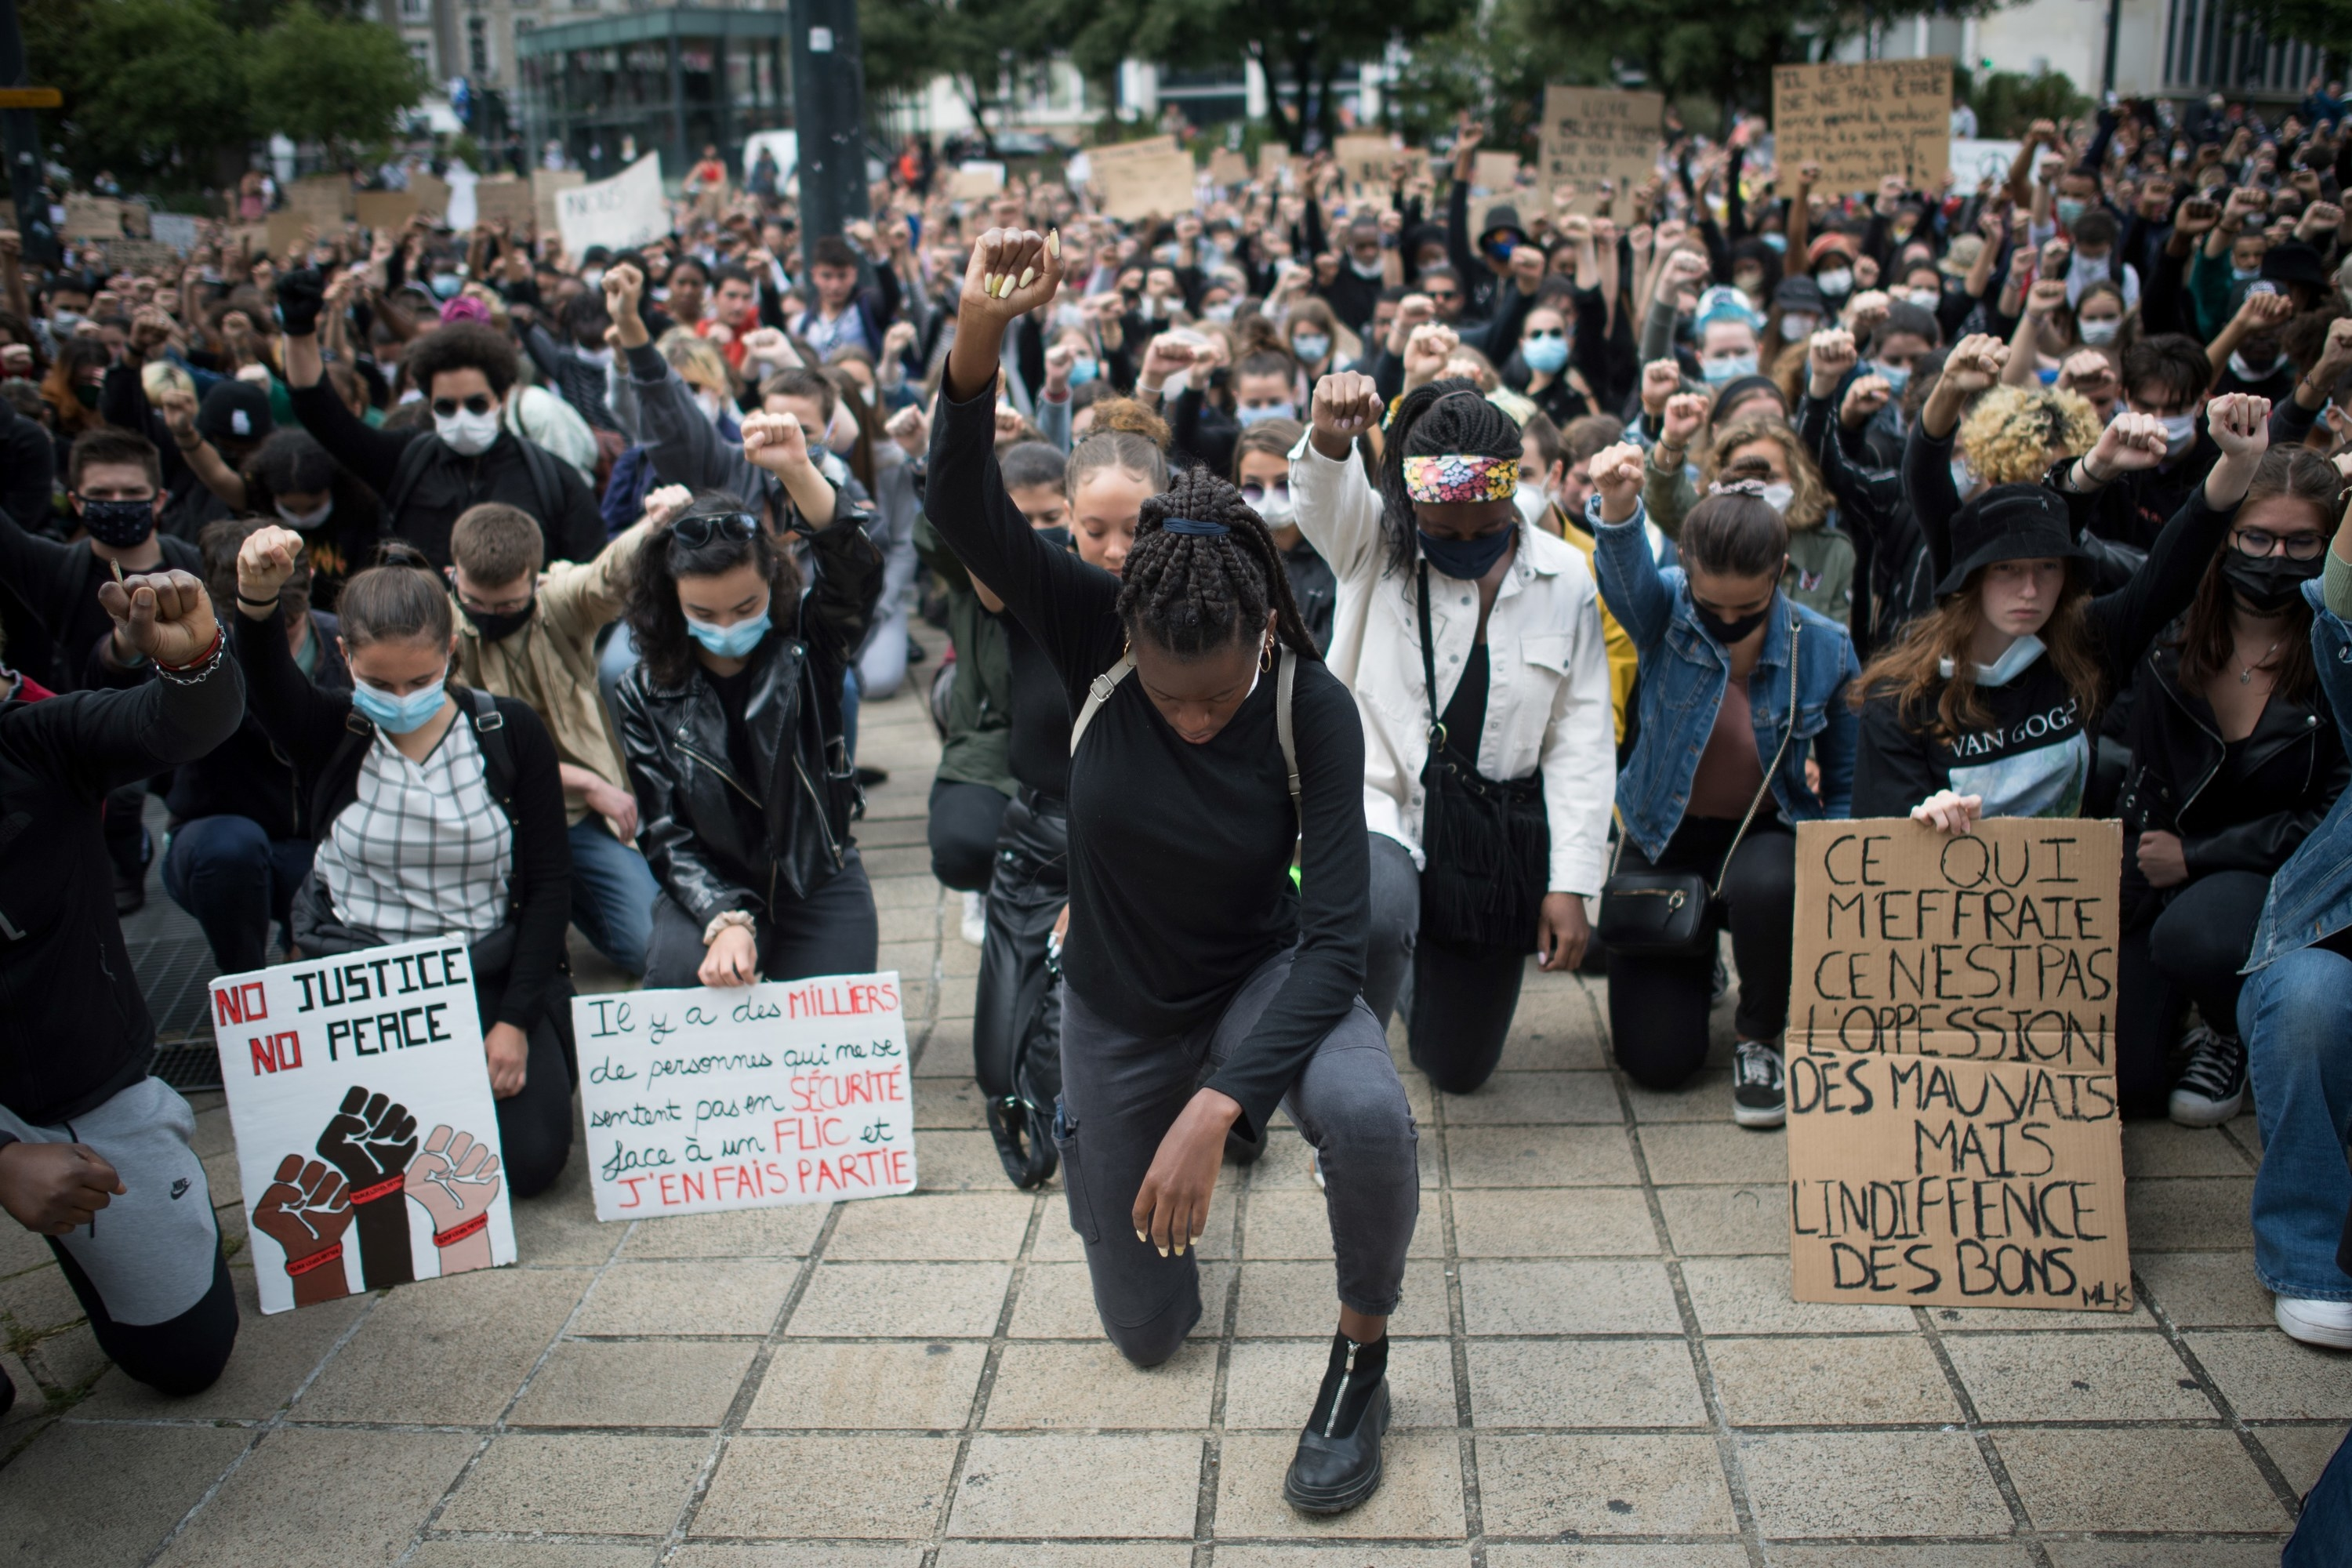 Protestors take a knee and raise their fists at a Black Lives Matter march